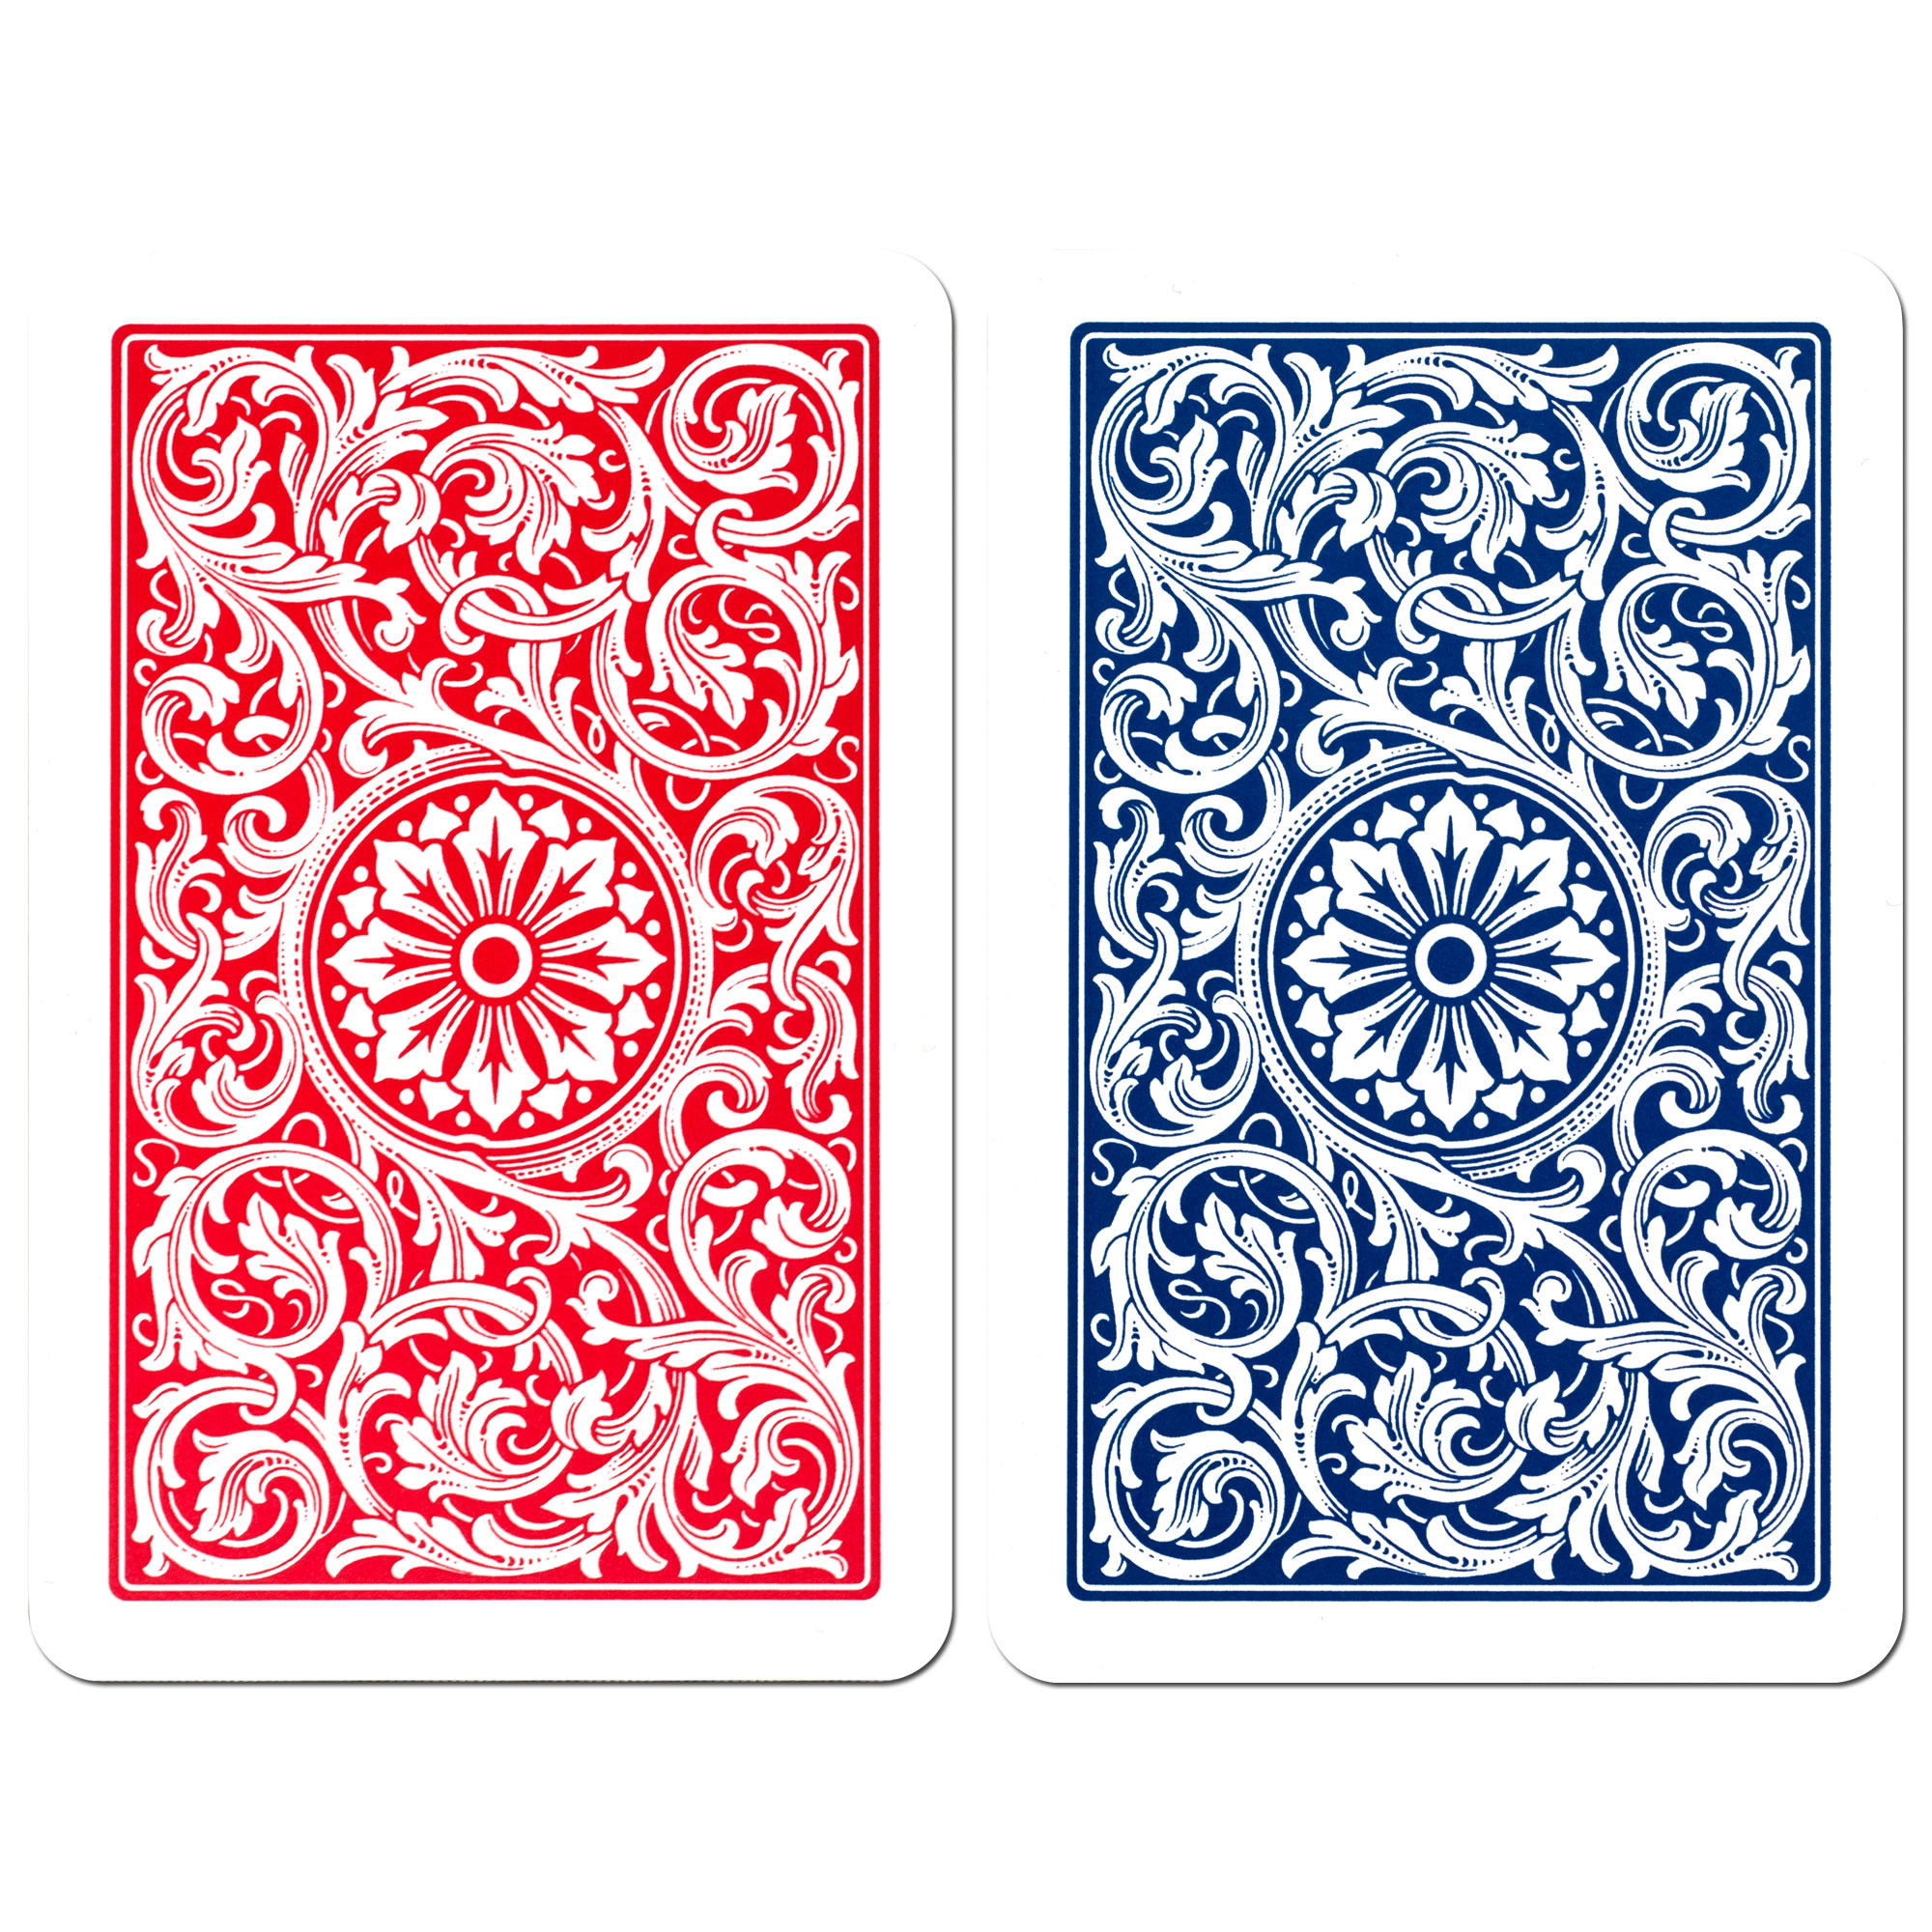 Playing Card - Cliparts.co